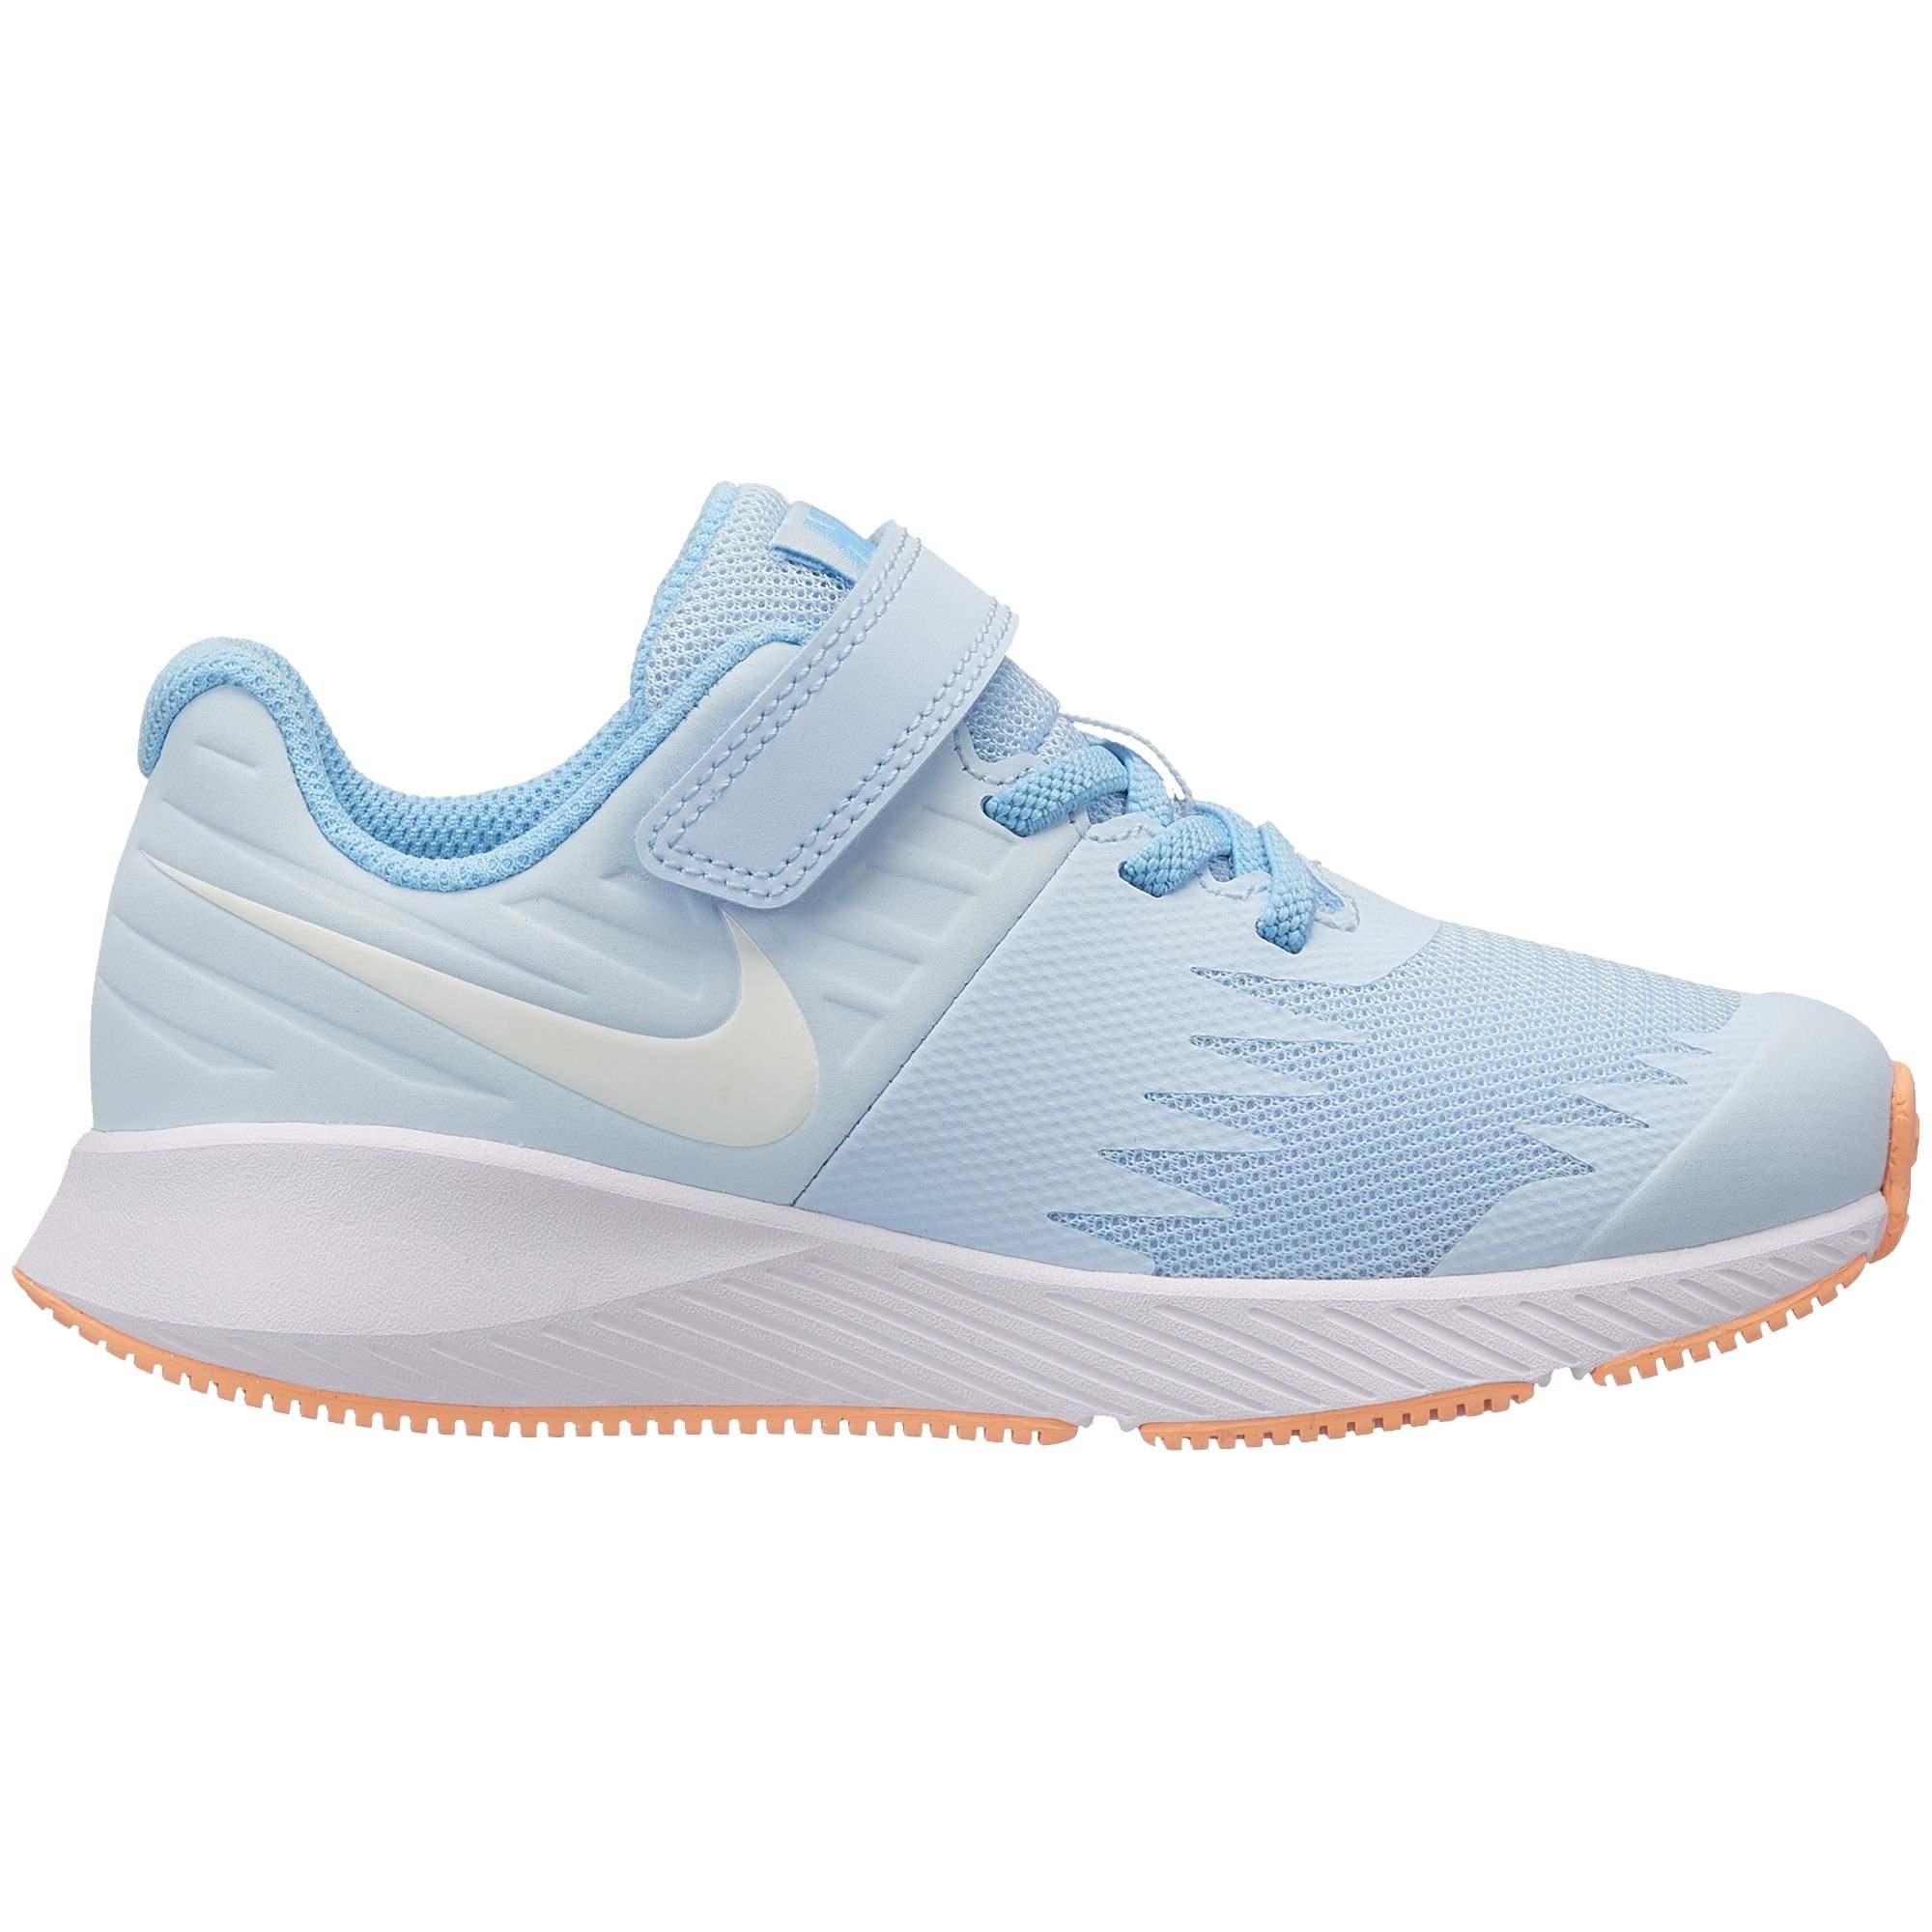 Nike Girl's Star Runner (PSV) Pre-School Shoe Cobalt Tint/White/Blue Chill Size 1.5 M US by Nike (Image #1)